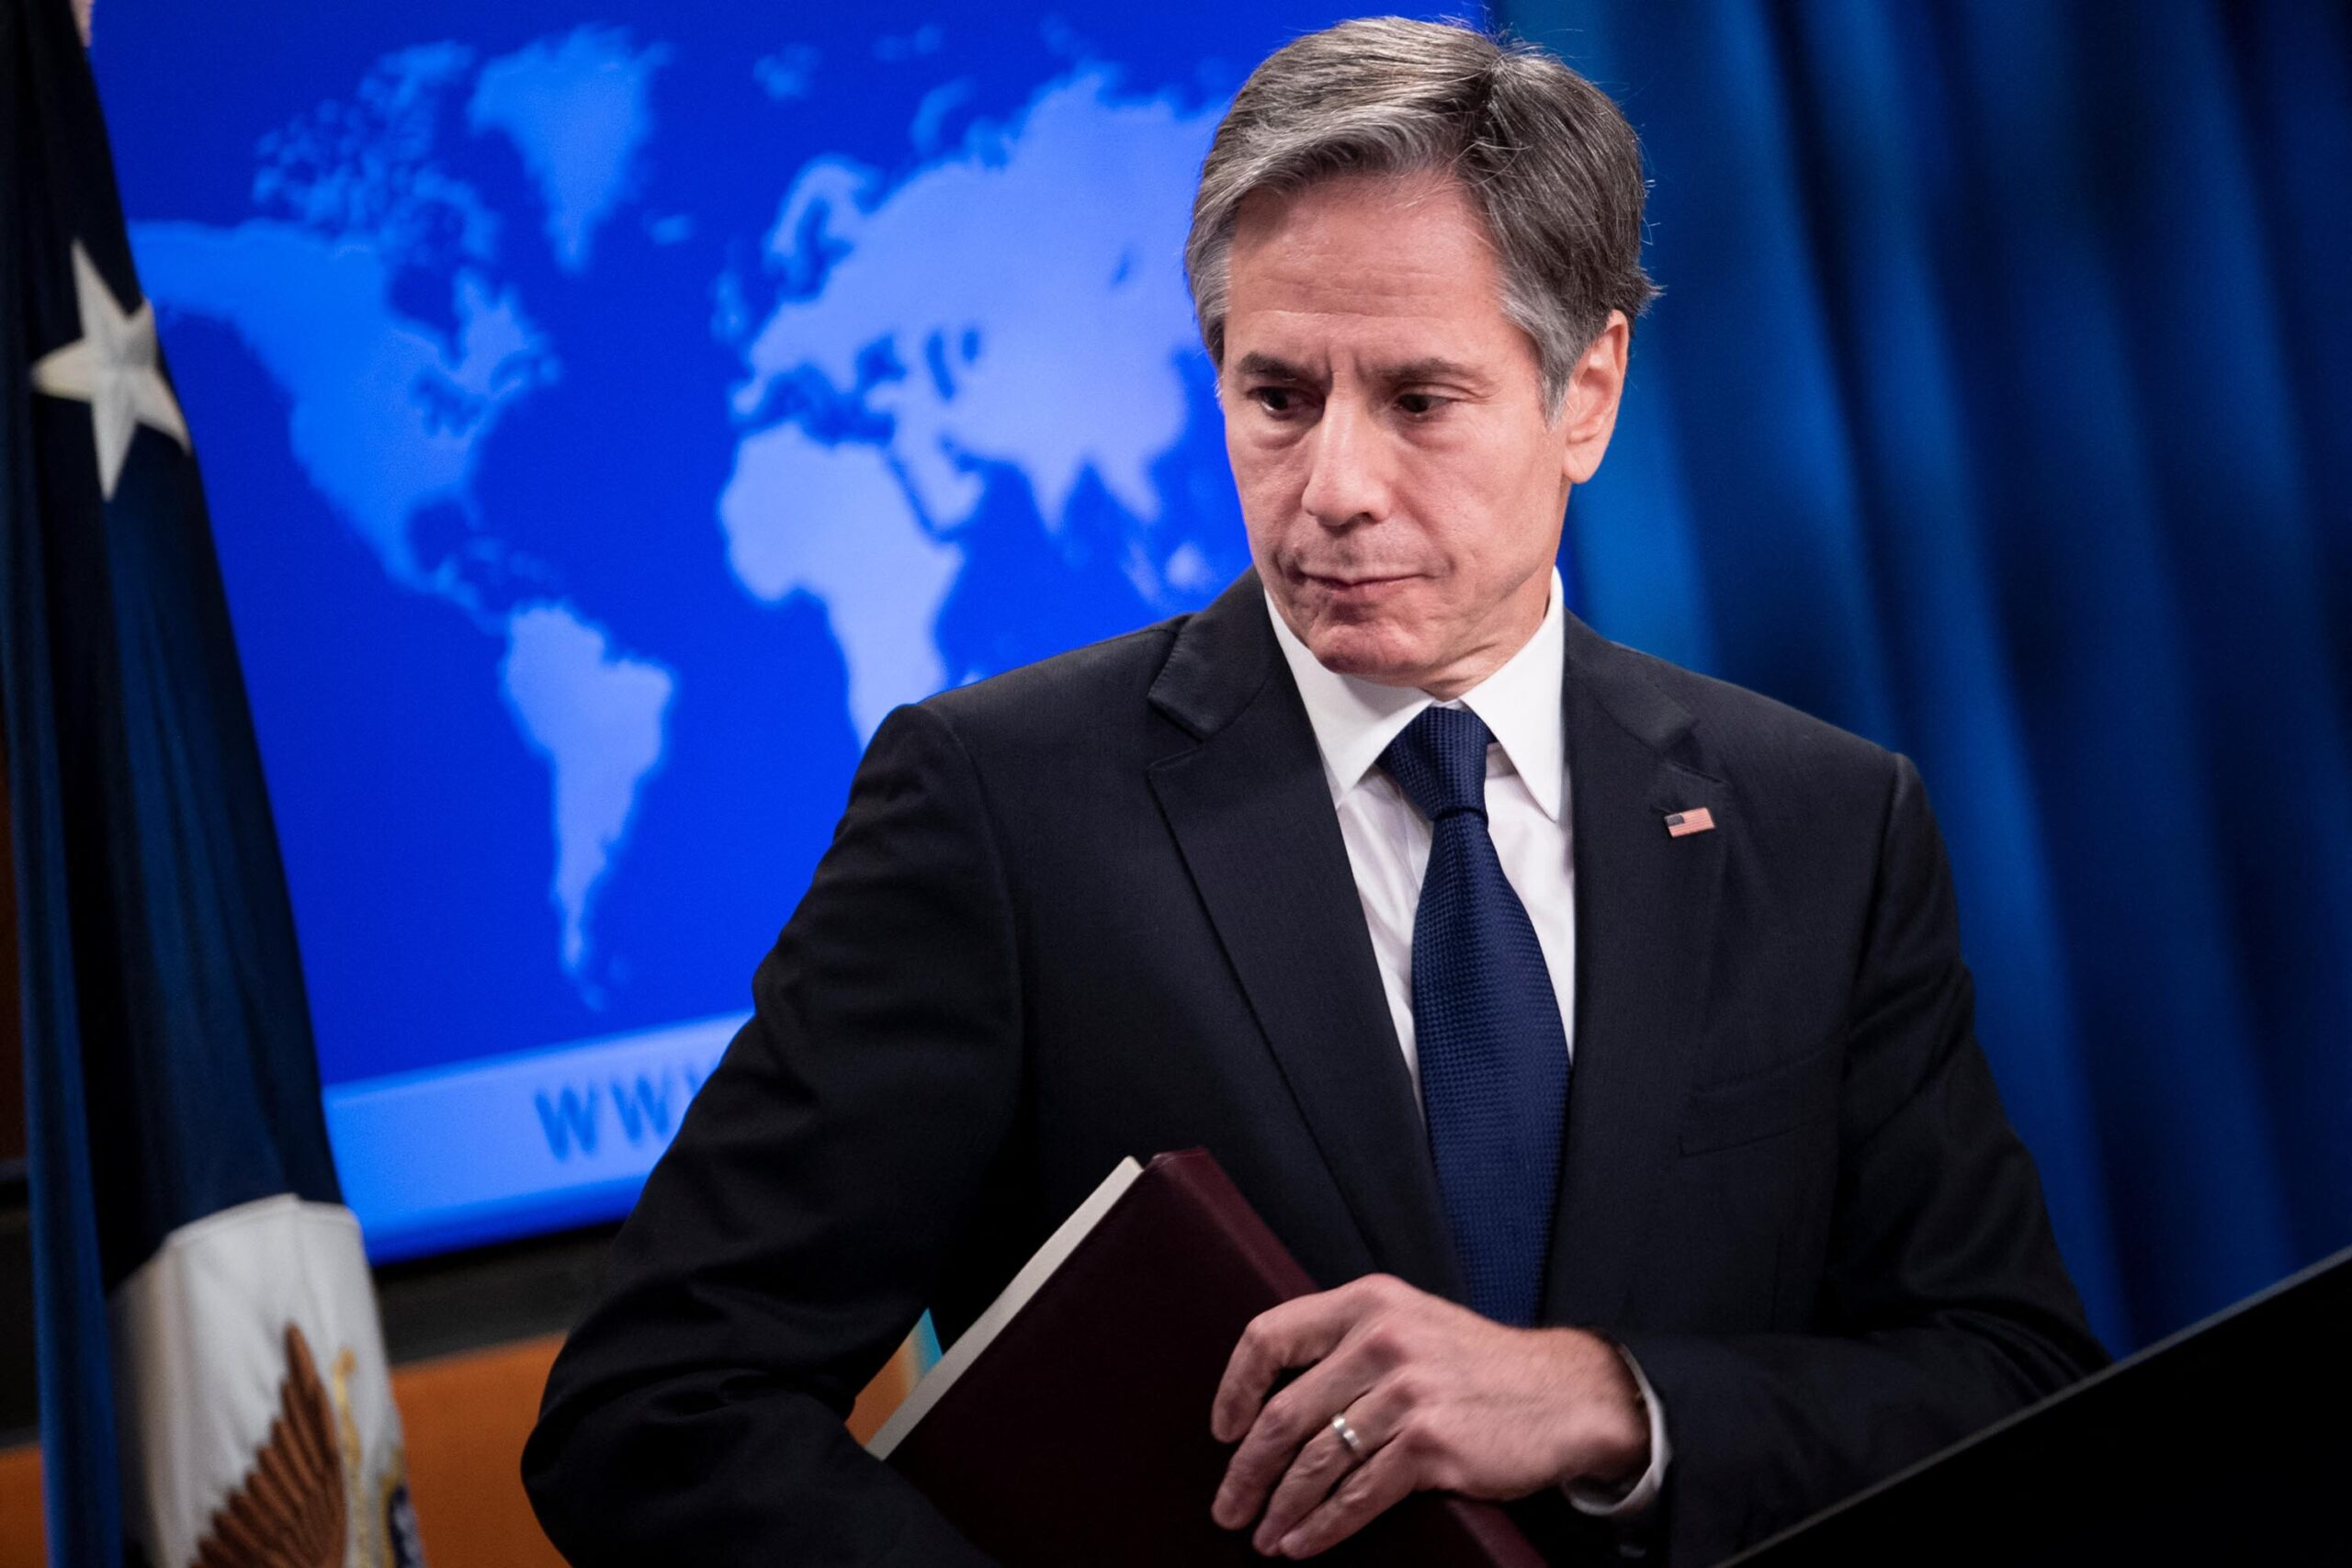 <i>BRENDAN SMIALOWSKI/AFP/POOL/Getty Images</i><br/>An ideologically diverse group of Democrats is pushing Secretary of State Antony Blinken to take specific steps toward helping thousands of individuals still seeking to leave Afghanistan